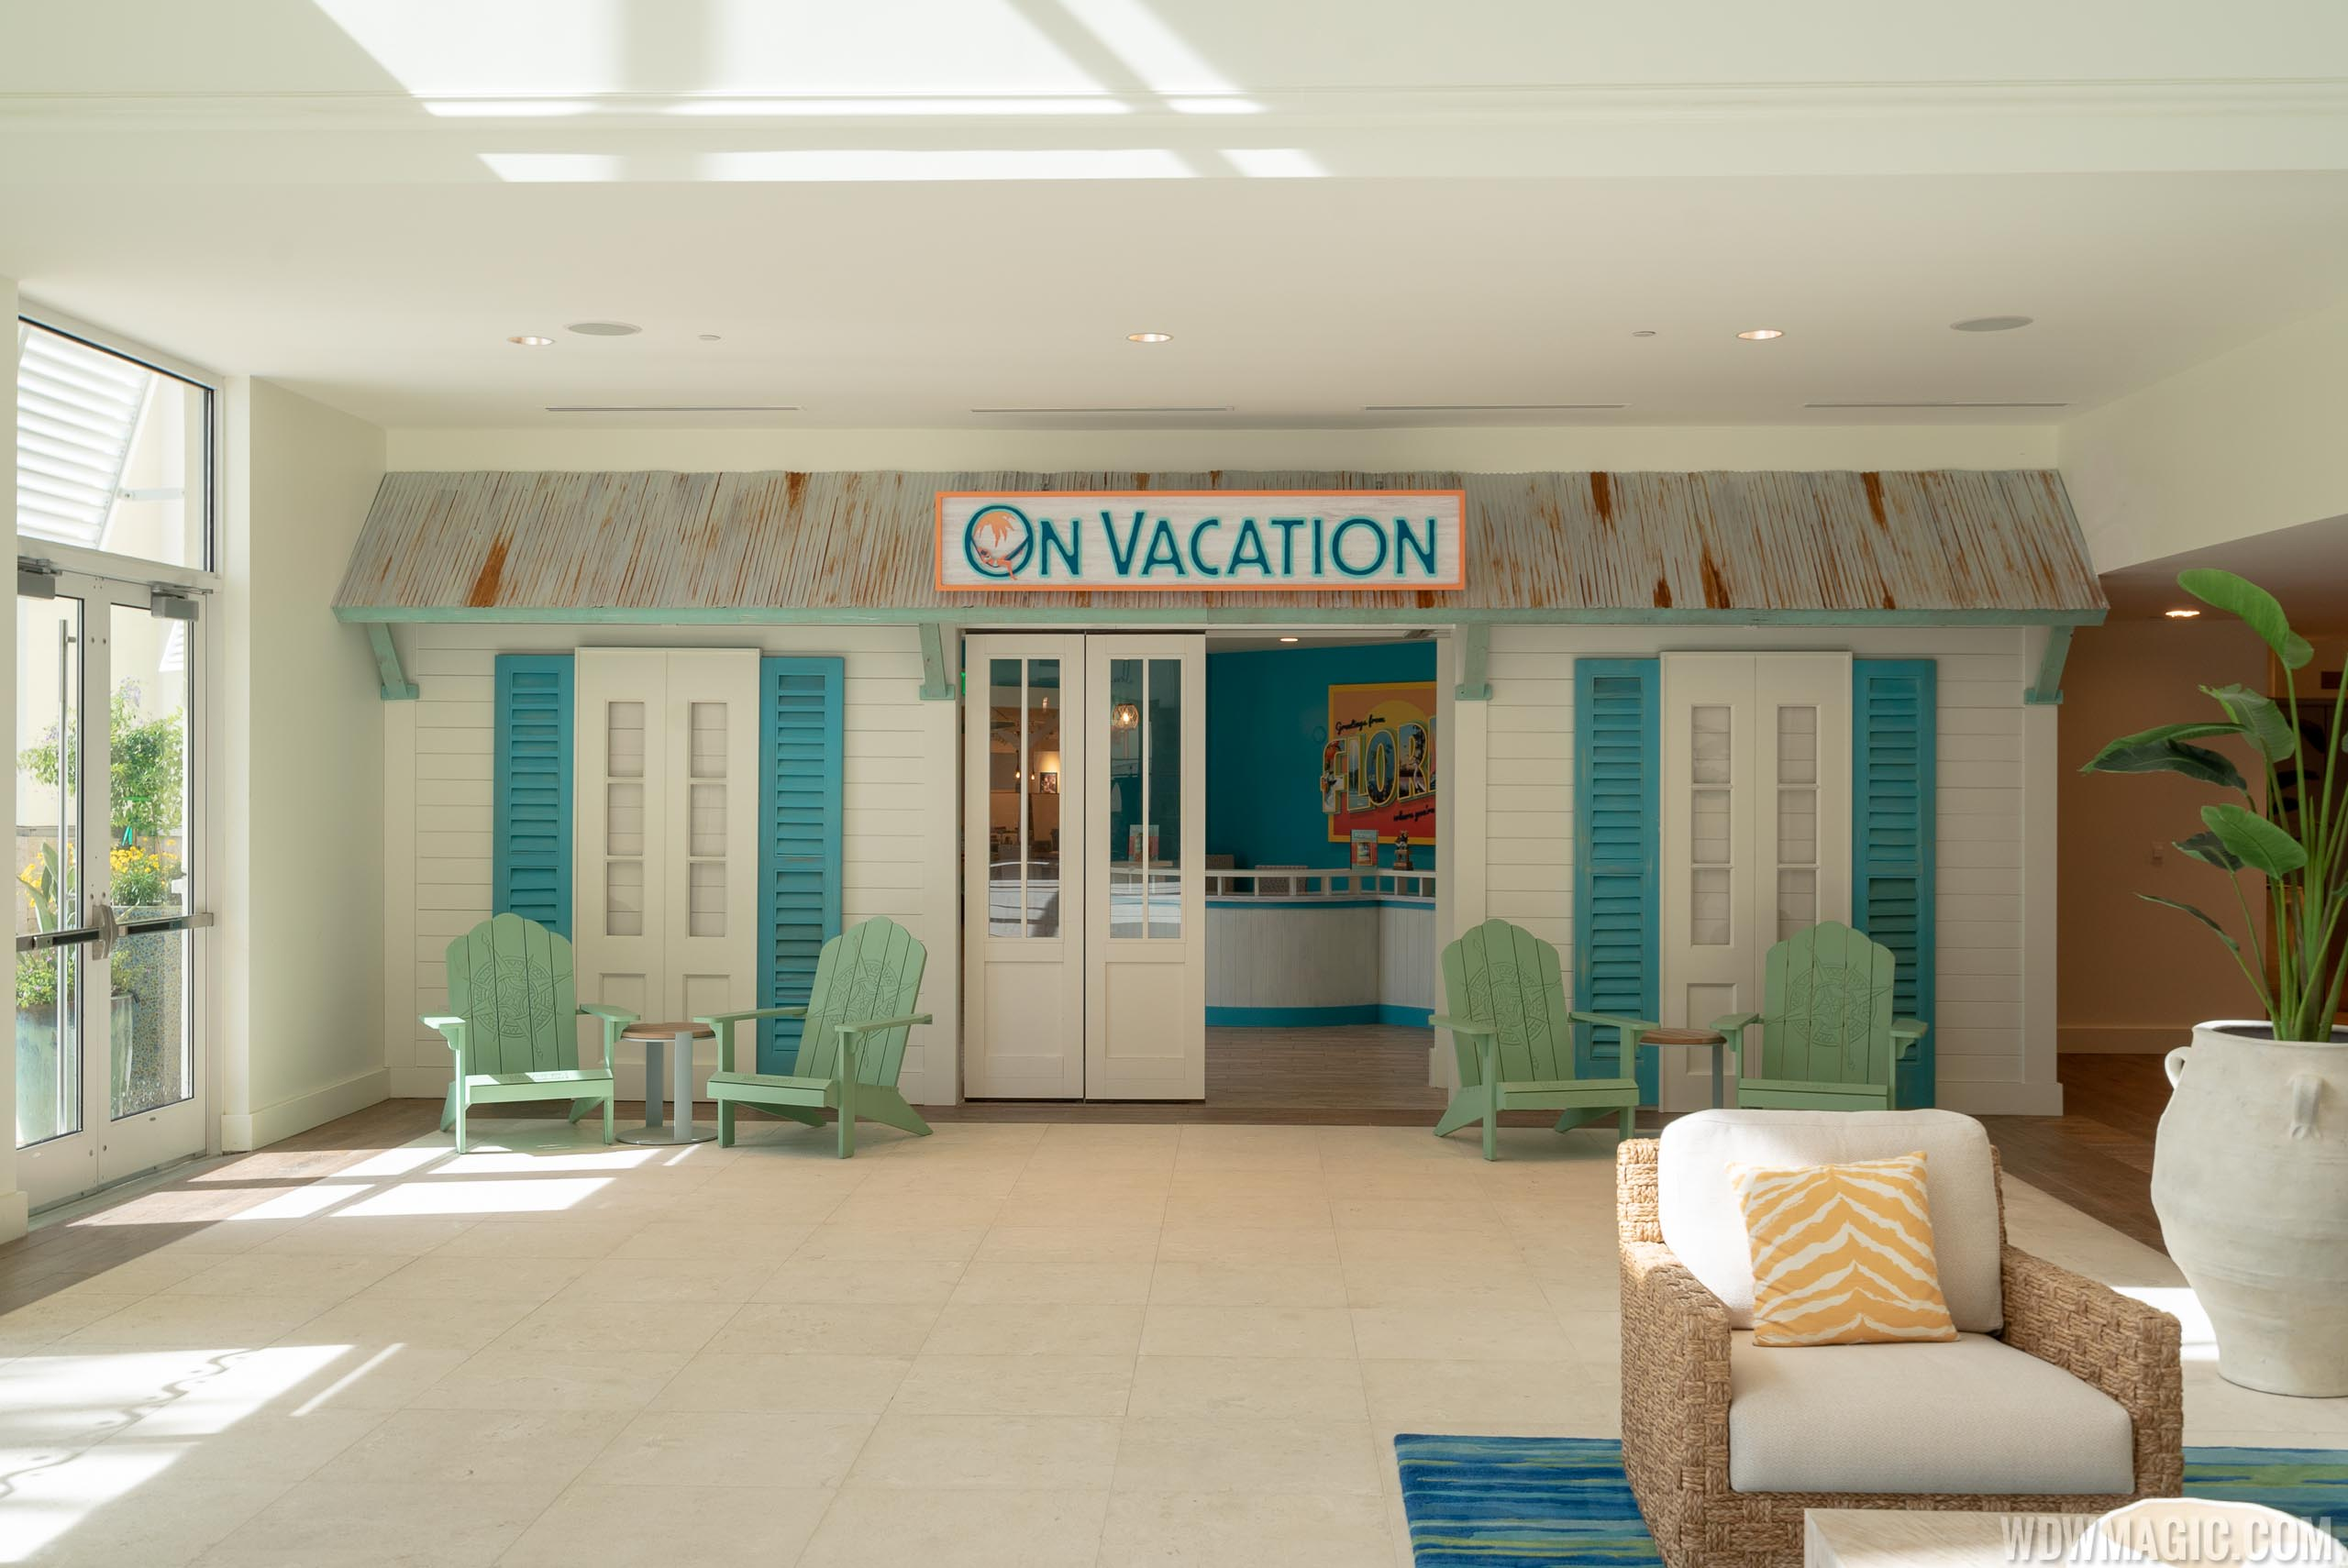 Margaritaville Resort Orlando - On Vacation Restaurant